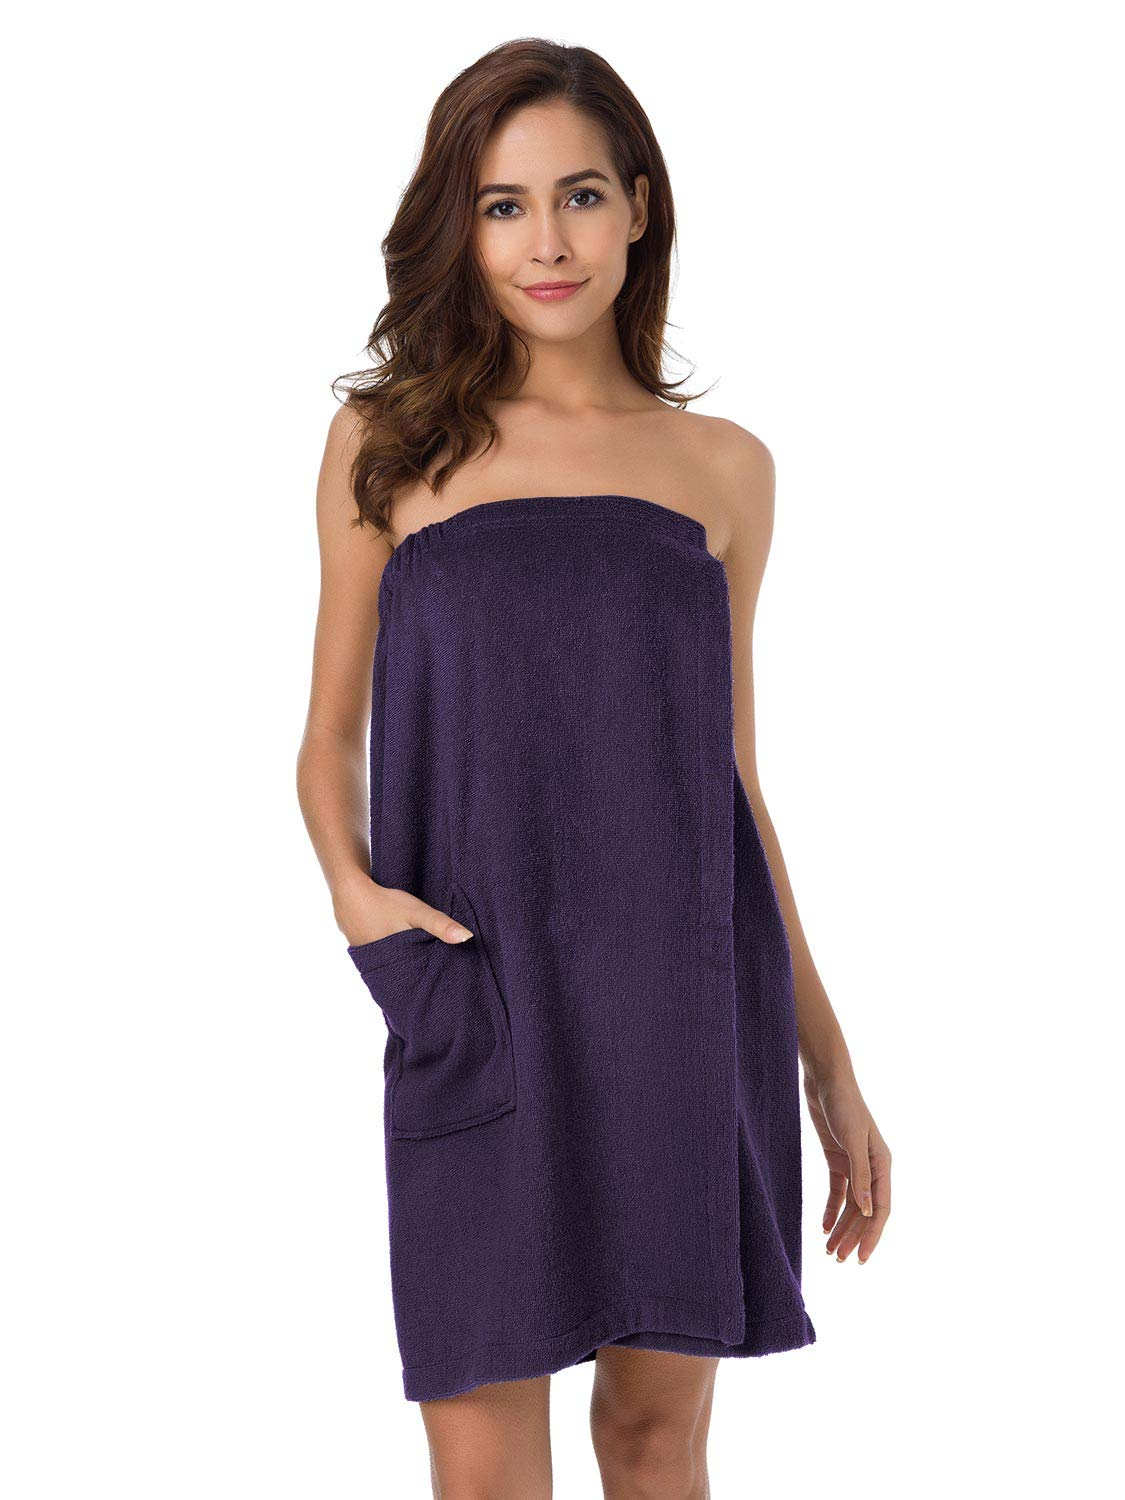 SIORO Women's Towel Wrap, Bamboo Cotton Bath Wraps with Adjustable Closure, Spa Towel Dress Gym and Shower Robes